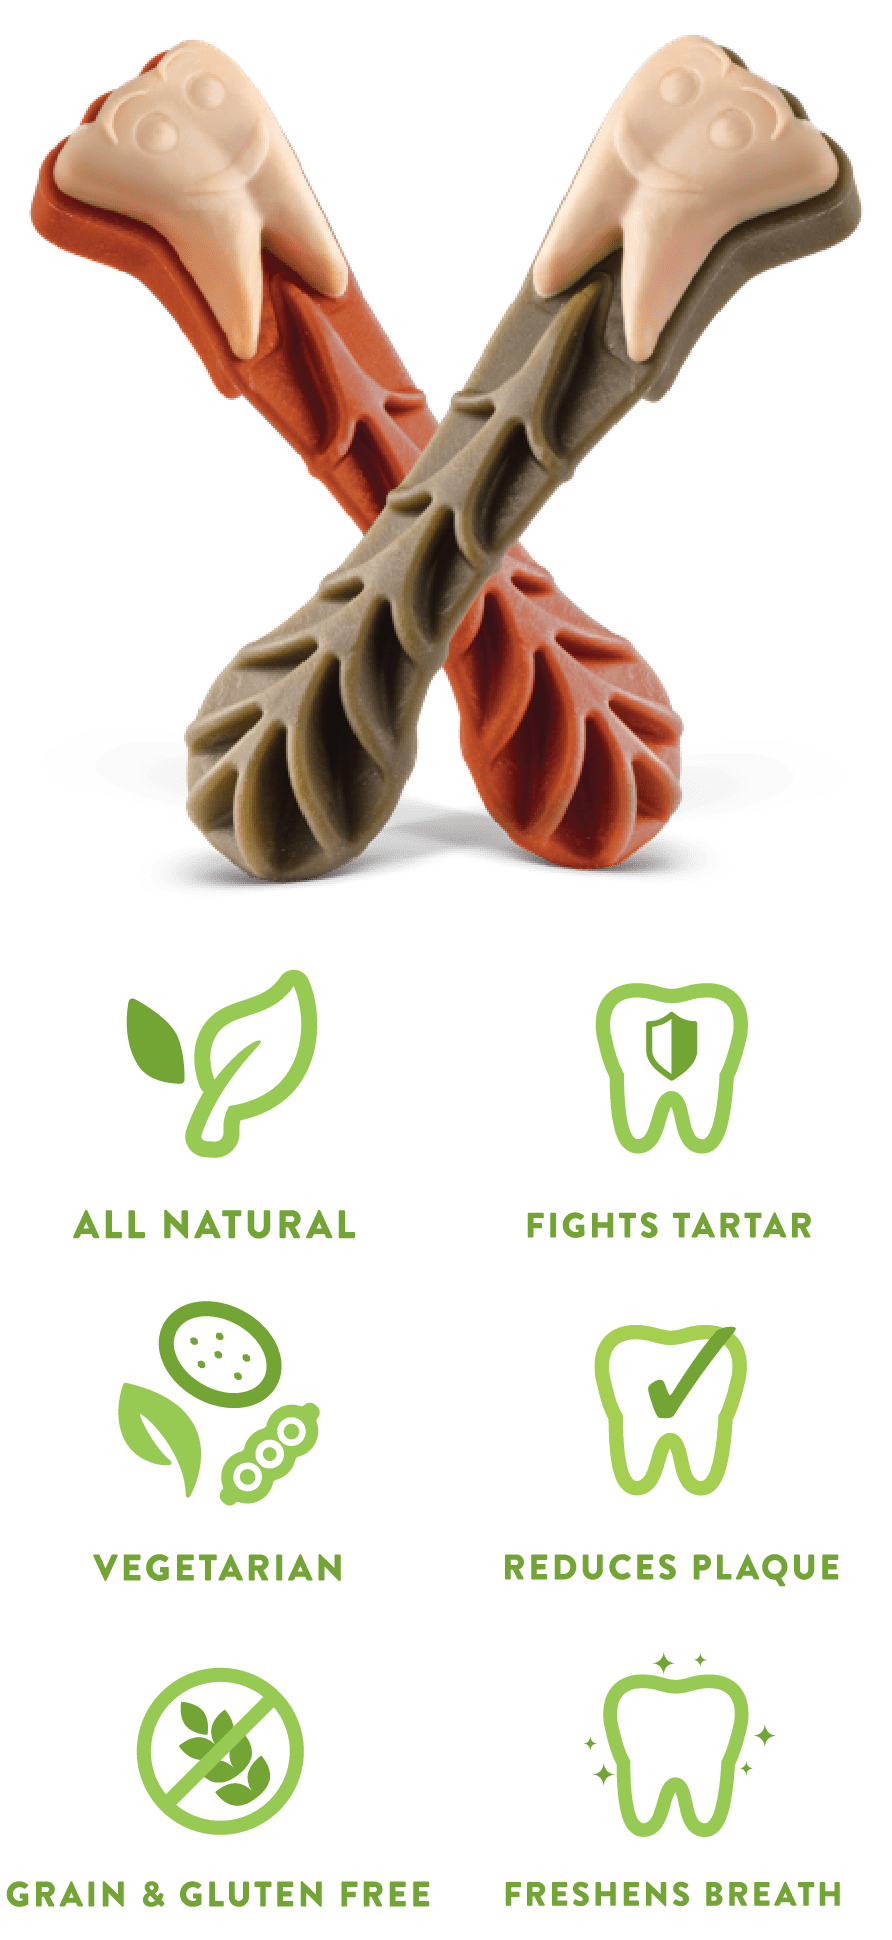 All-natural, Vegetarian, Grain & Gluten Free, Fights Tartar, Reduces Plaque, Freshens Breath